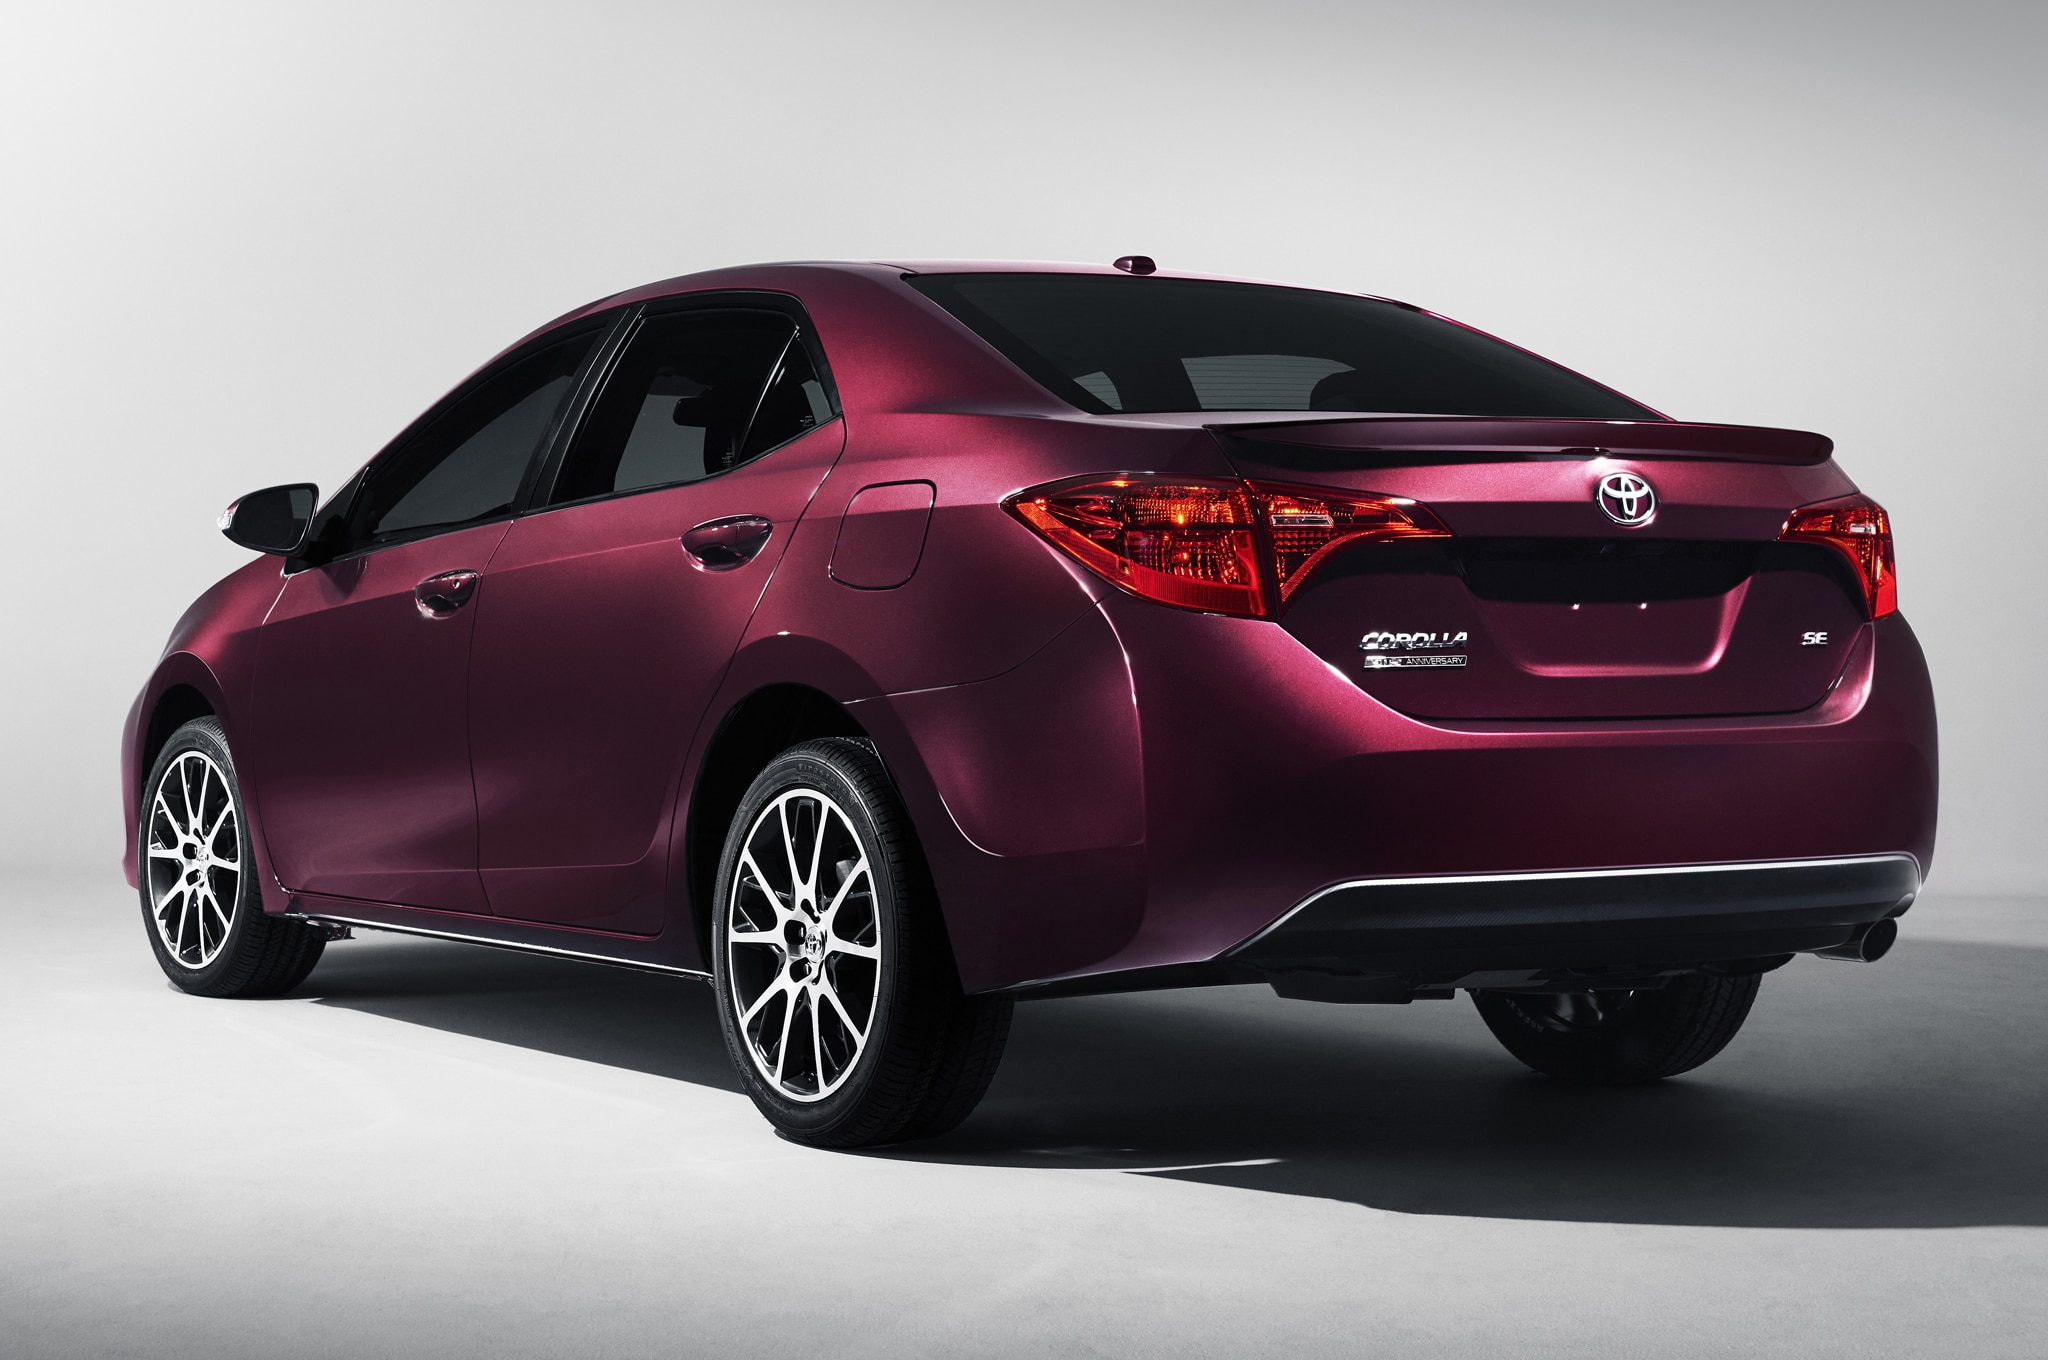 2017 toyota corolla xse rear side view sitting